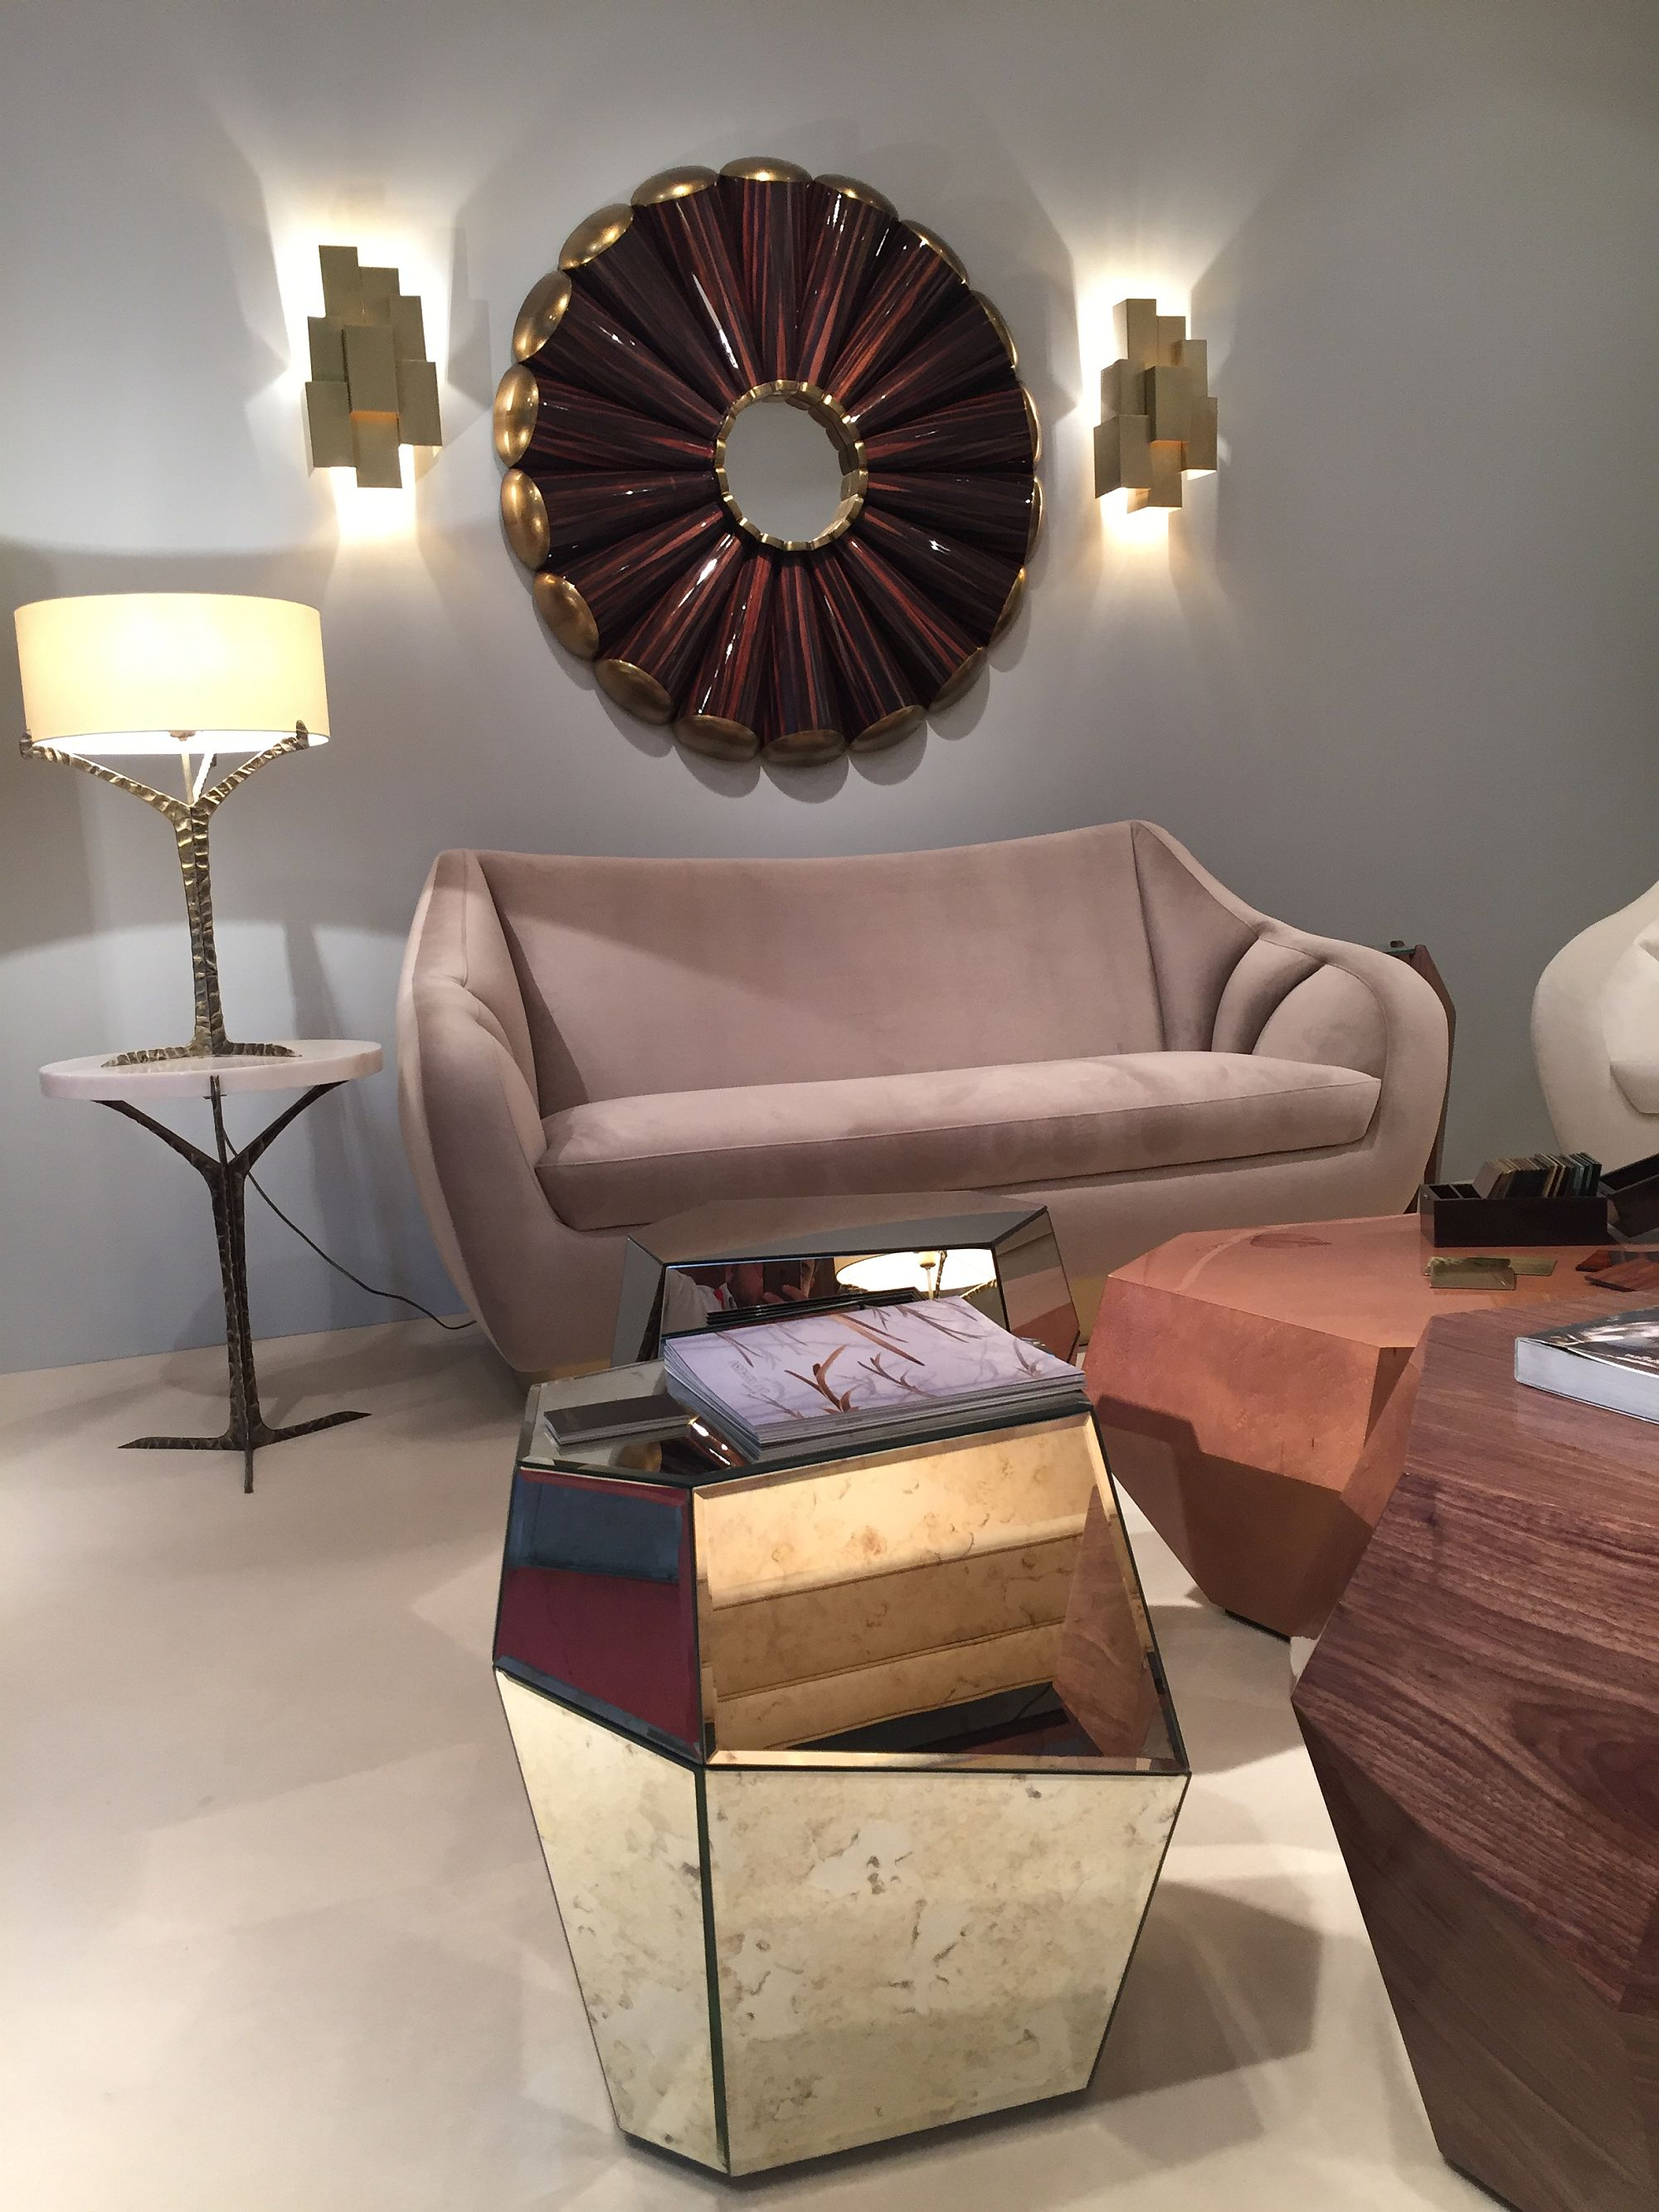 Exclusive mirrored coffee table and side table from INSIDHERLAND